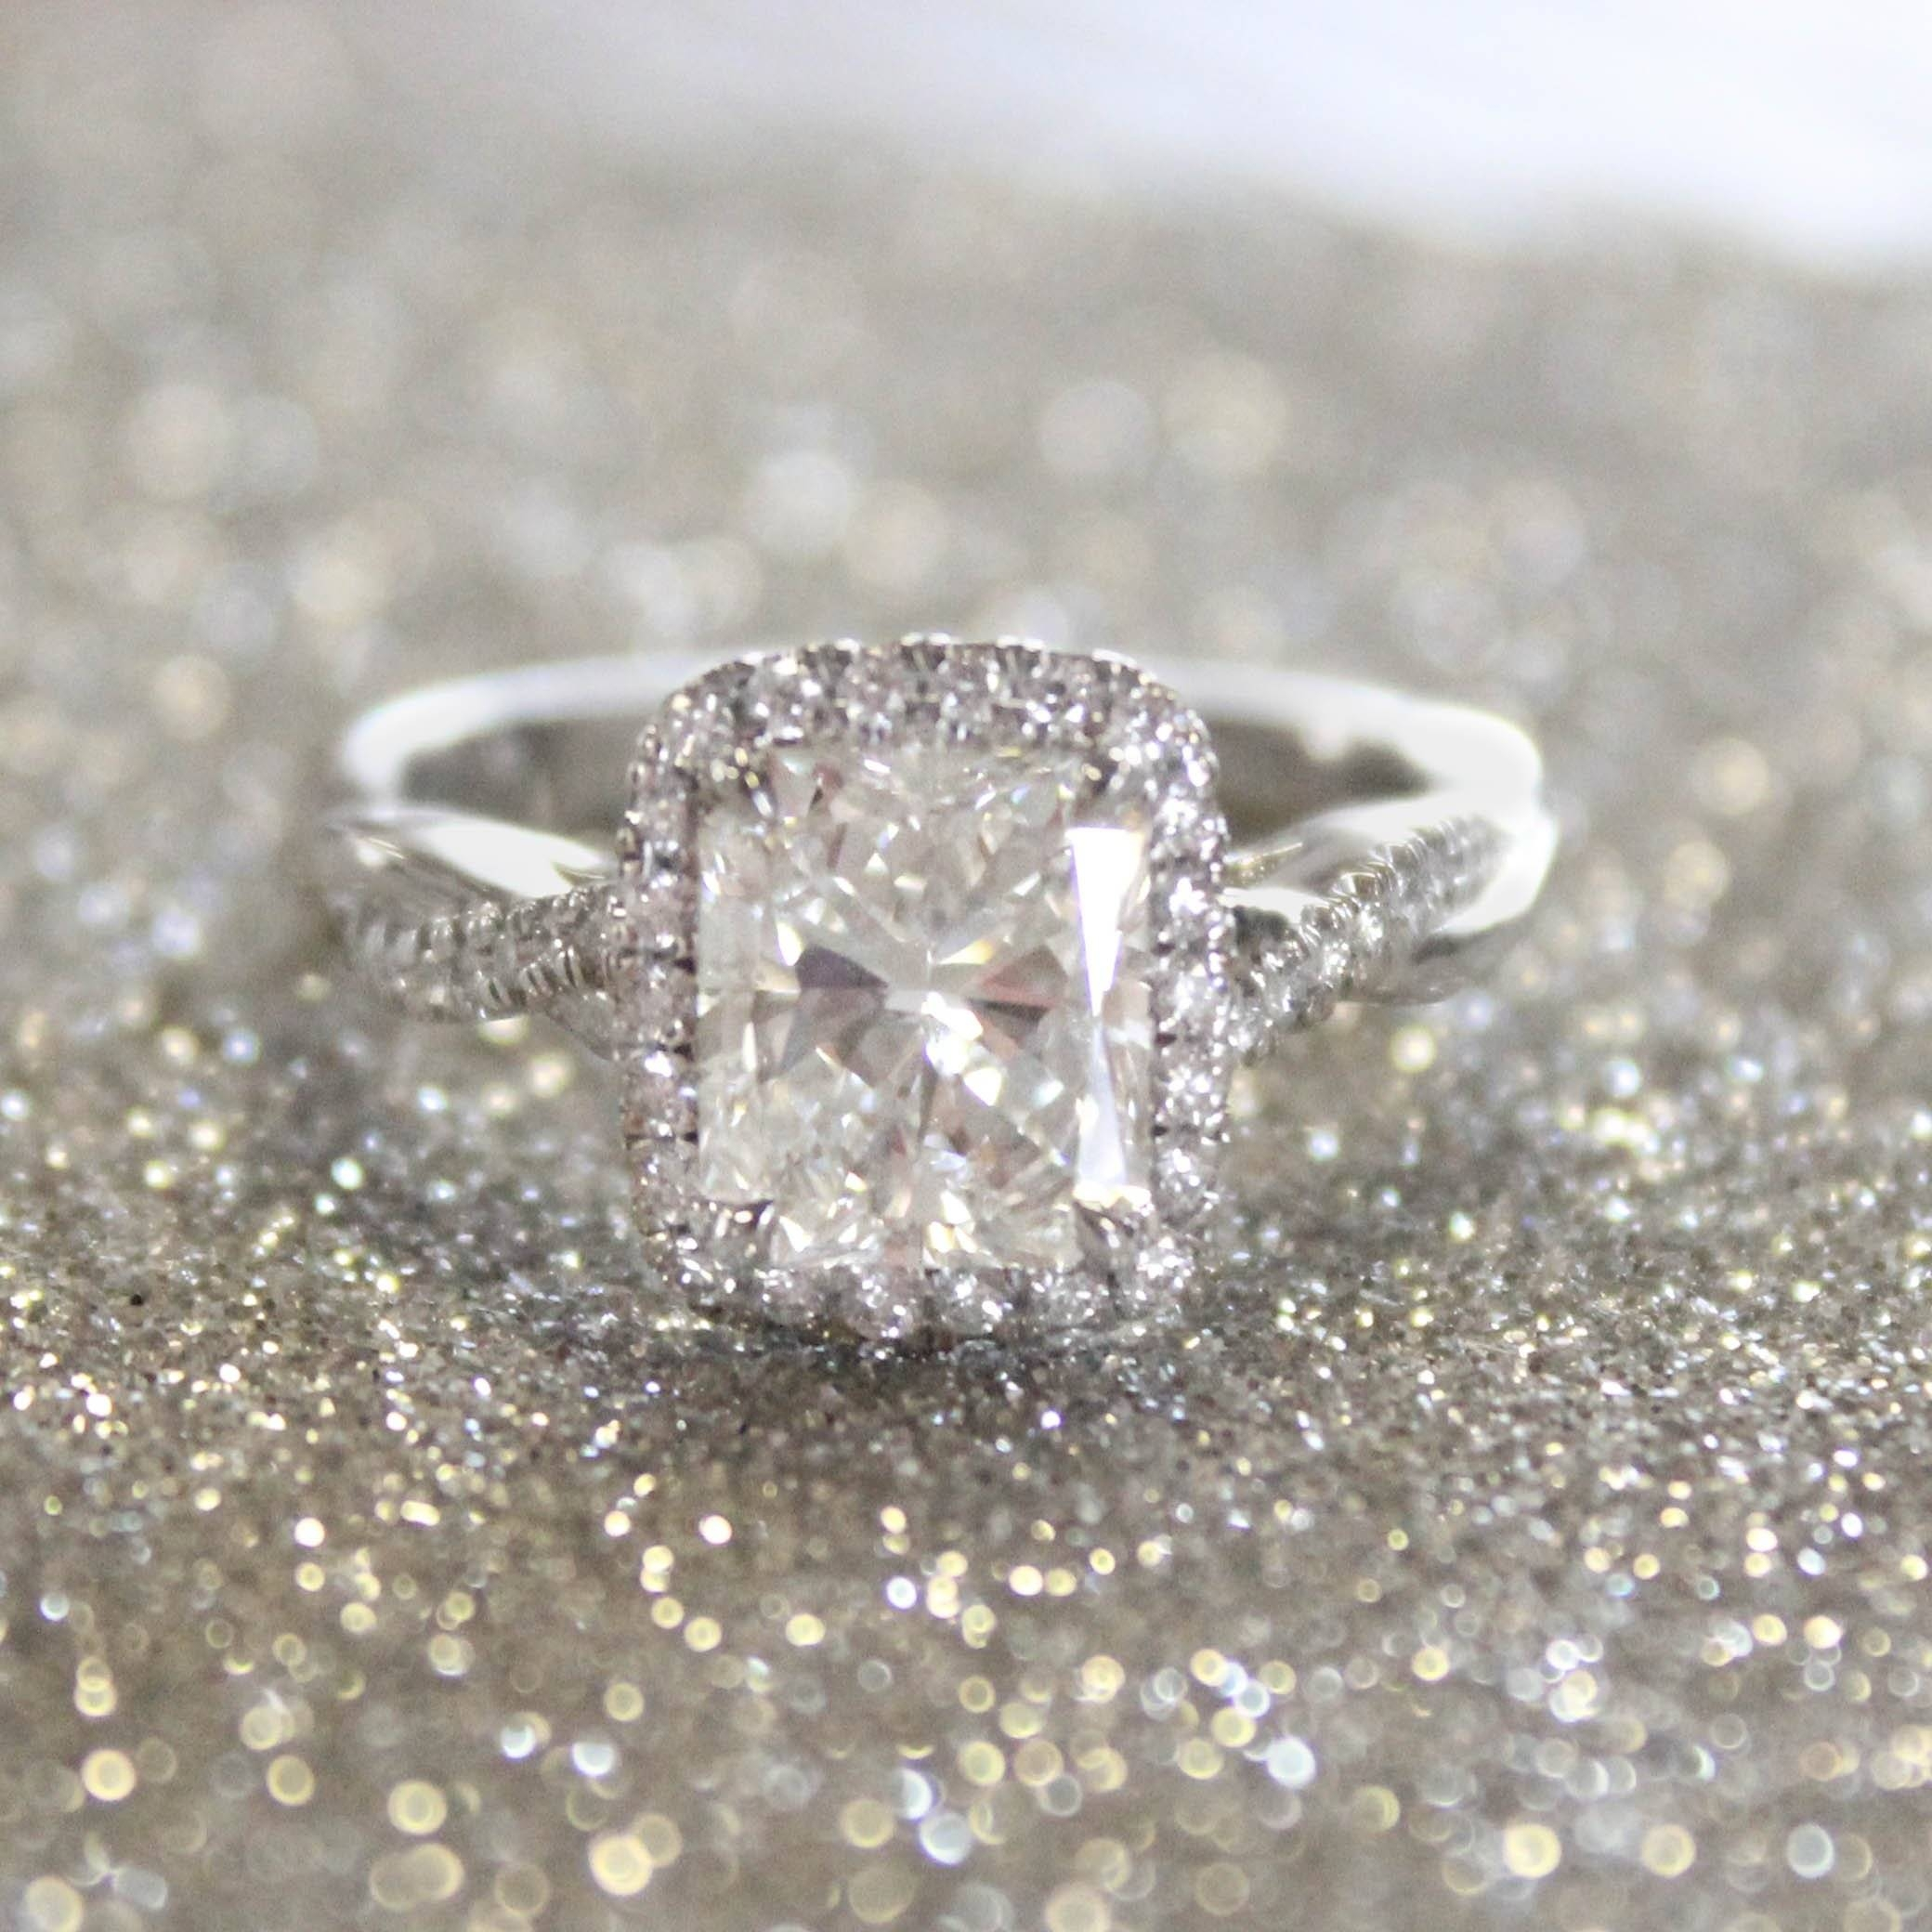 The 8 Most Beautiful Radiant Cut Engagement Rings – Brilliant Throughout Radiant Cut Engagement Ring Settings (View 6 of 15)